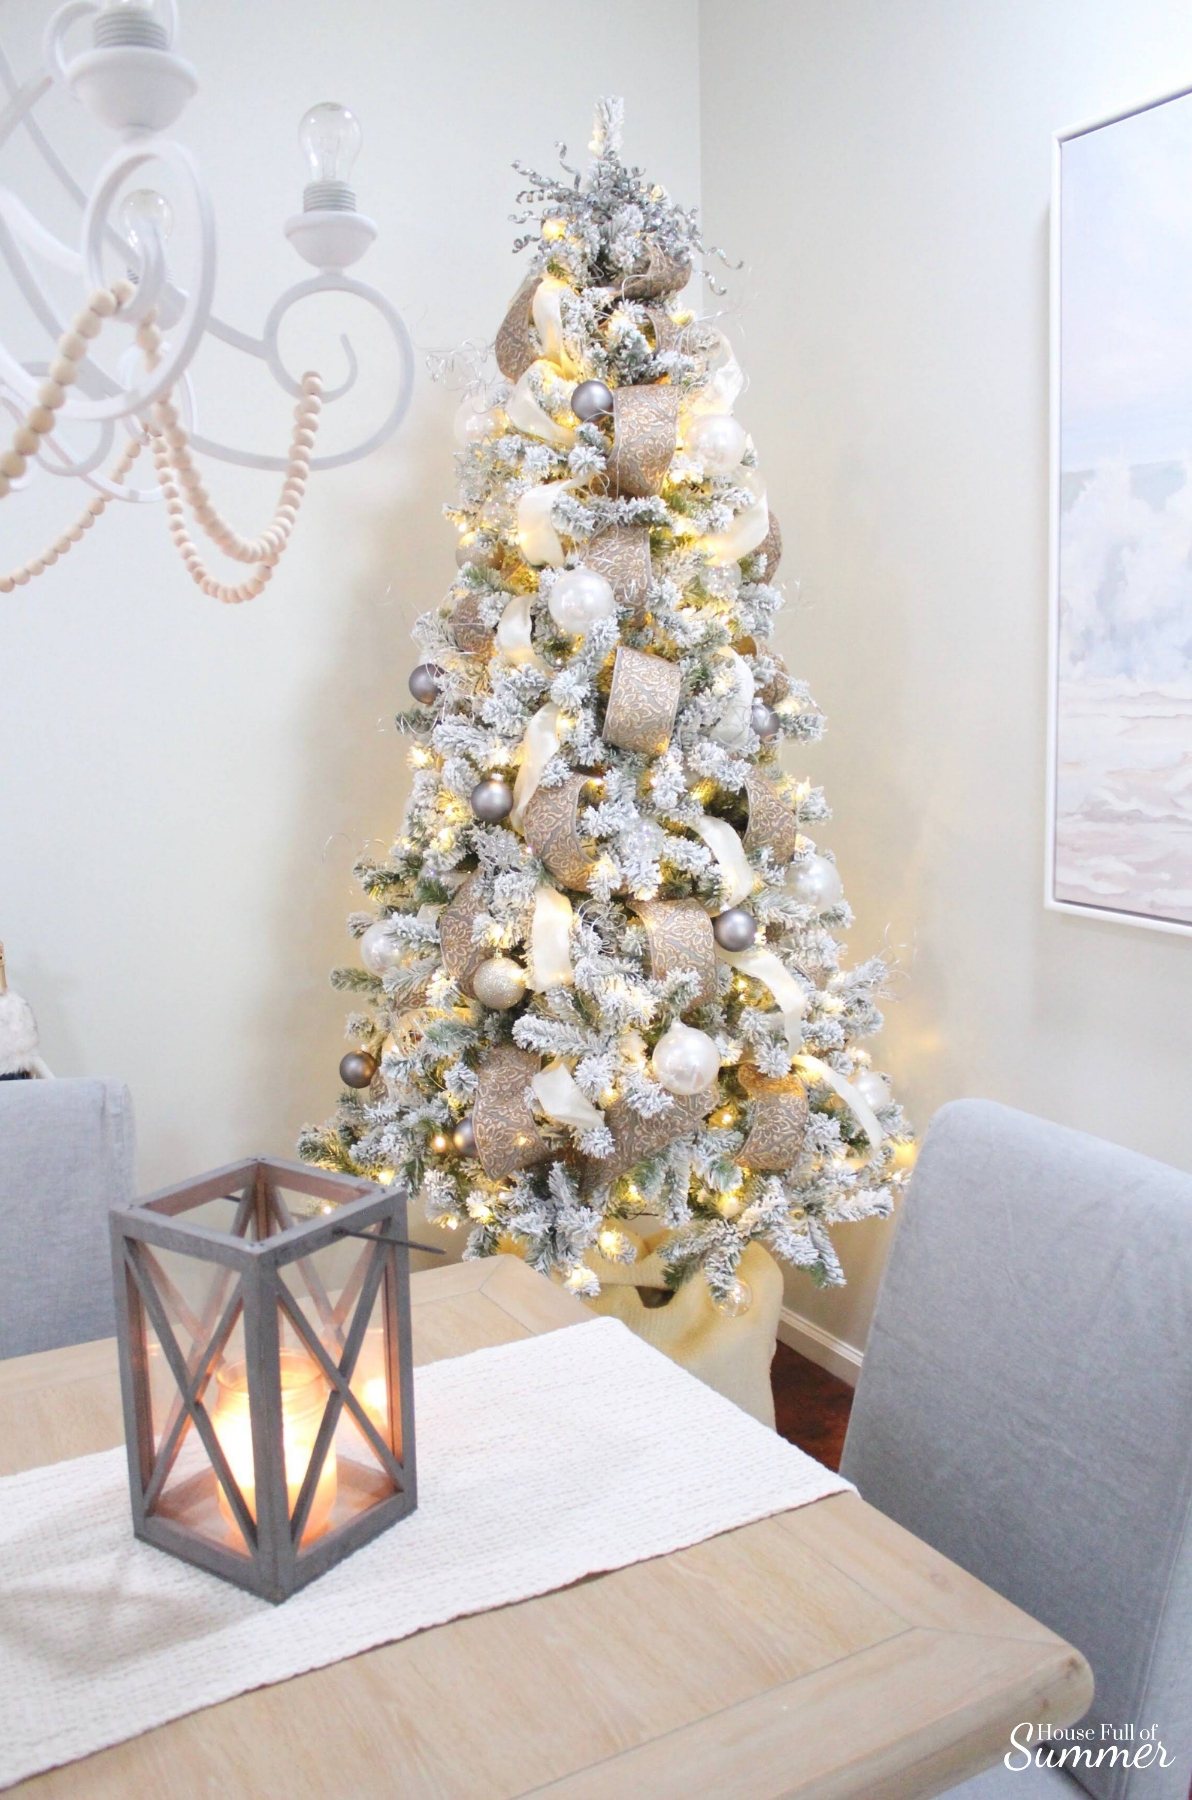 A Charming Southern Christmas Home Tour {Part 1} | House Full of Summer - Gold Magnolias and Southern influences in Christmas decor, neutral Christmas decorating, foyer, living room, Christmas centerpiece, greenery, DIY holiday arrangement, coastal decor, Southern Christmas tree ornament ideas